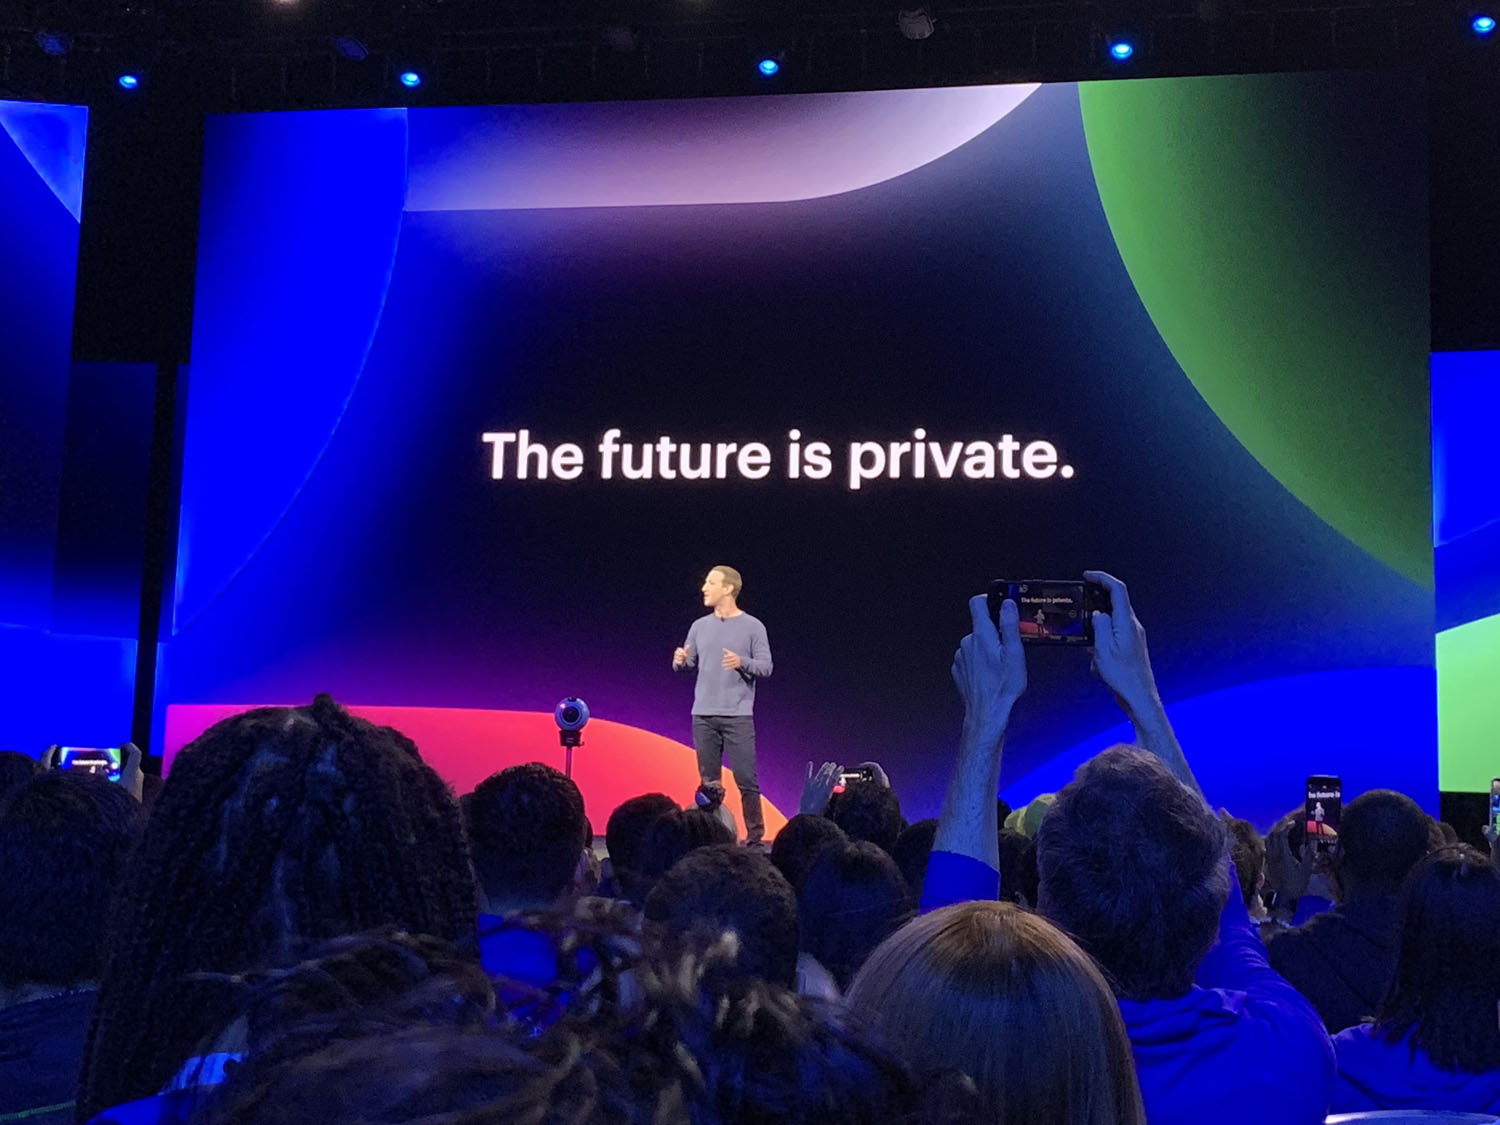 Keeping it private: Marketforce Perth's Chris Andrawes at F8 Facebook conference – Day 1